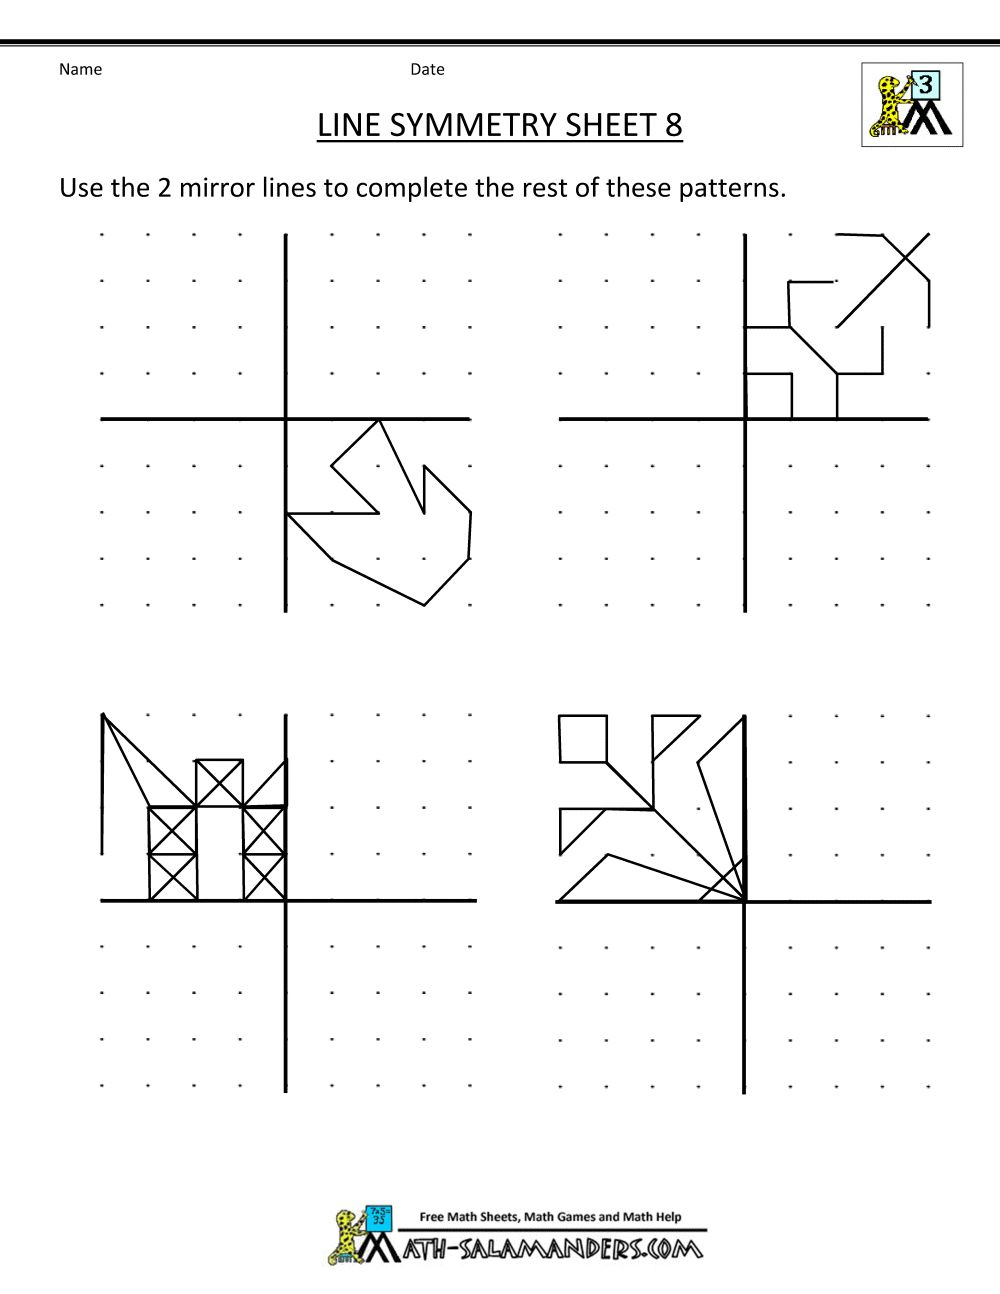 Completing patterns | Year 6 creative maths | Pinterest